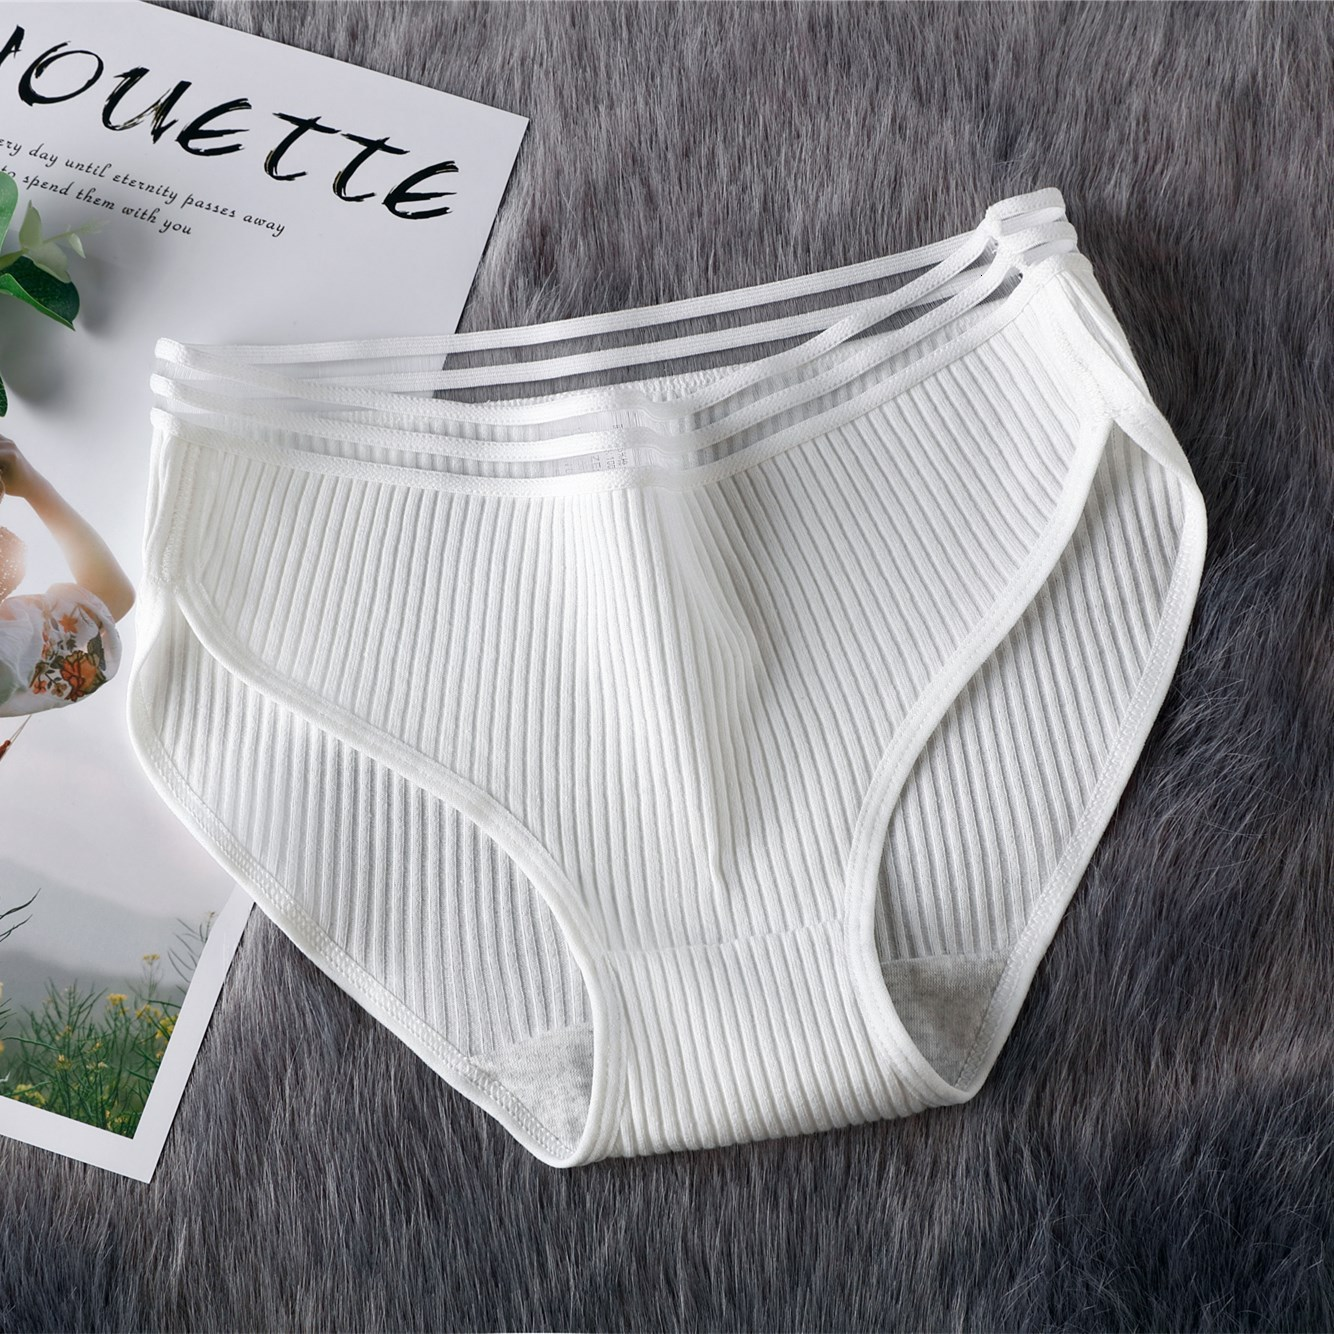 Panties for women cotton underwear letter sexy lingerie female casual briefs ladies underpants girl panty Lingerie Intimates NEW